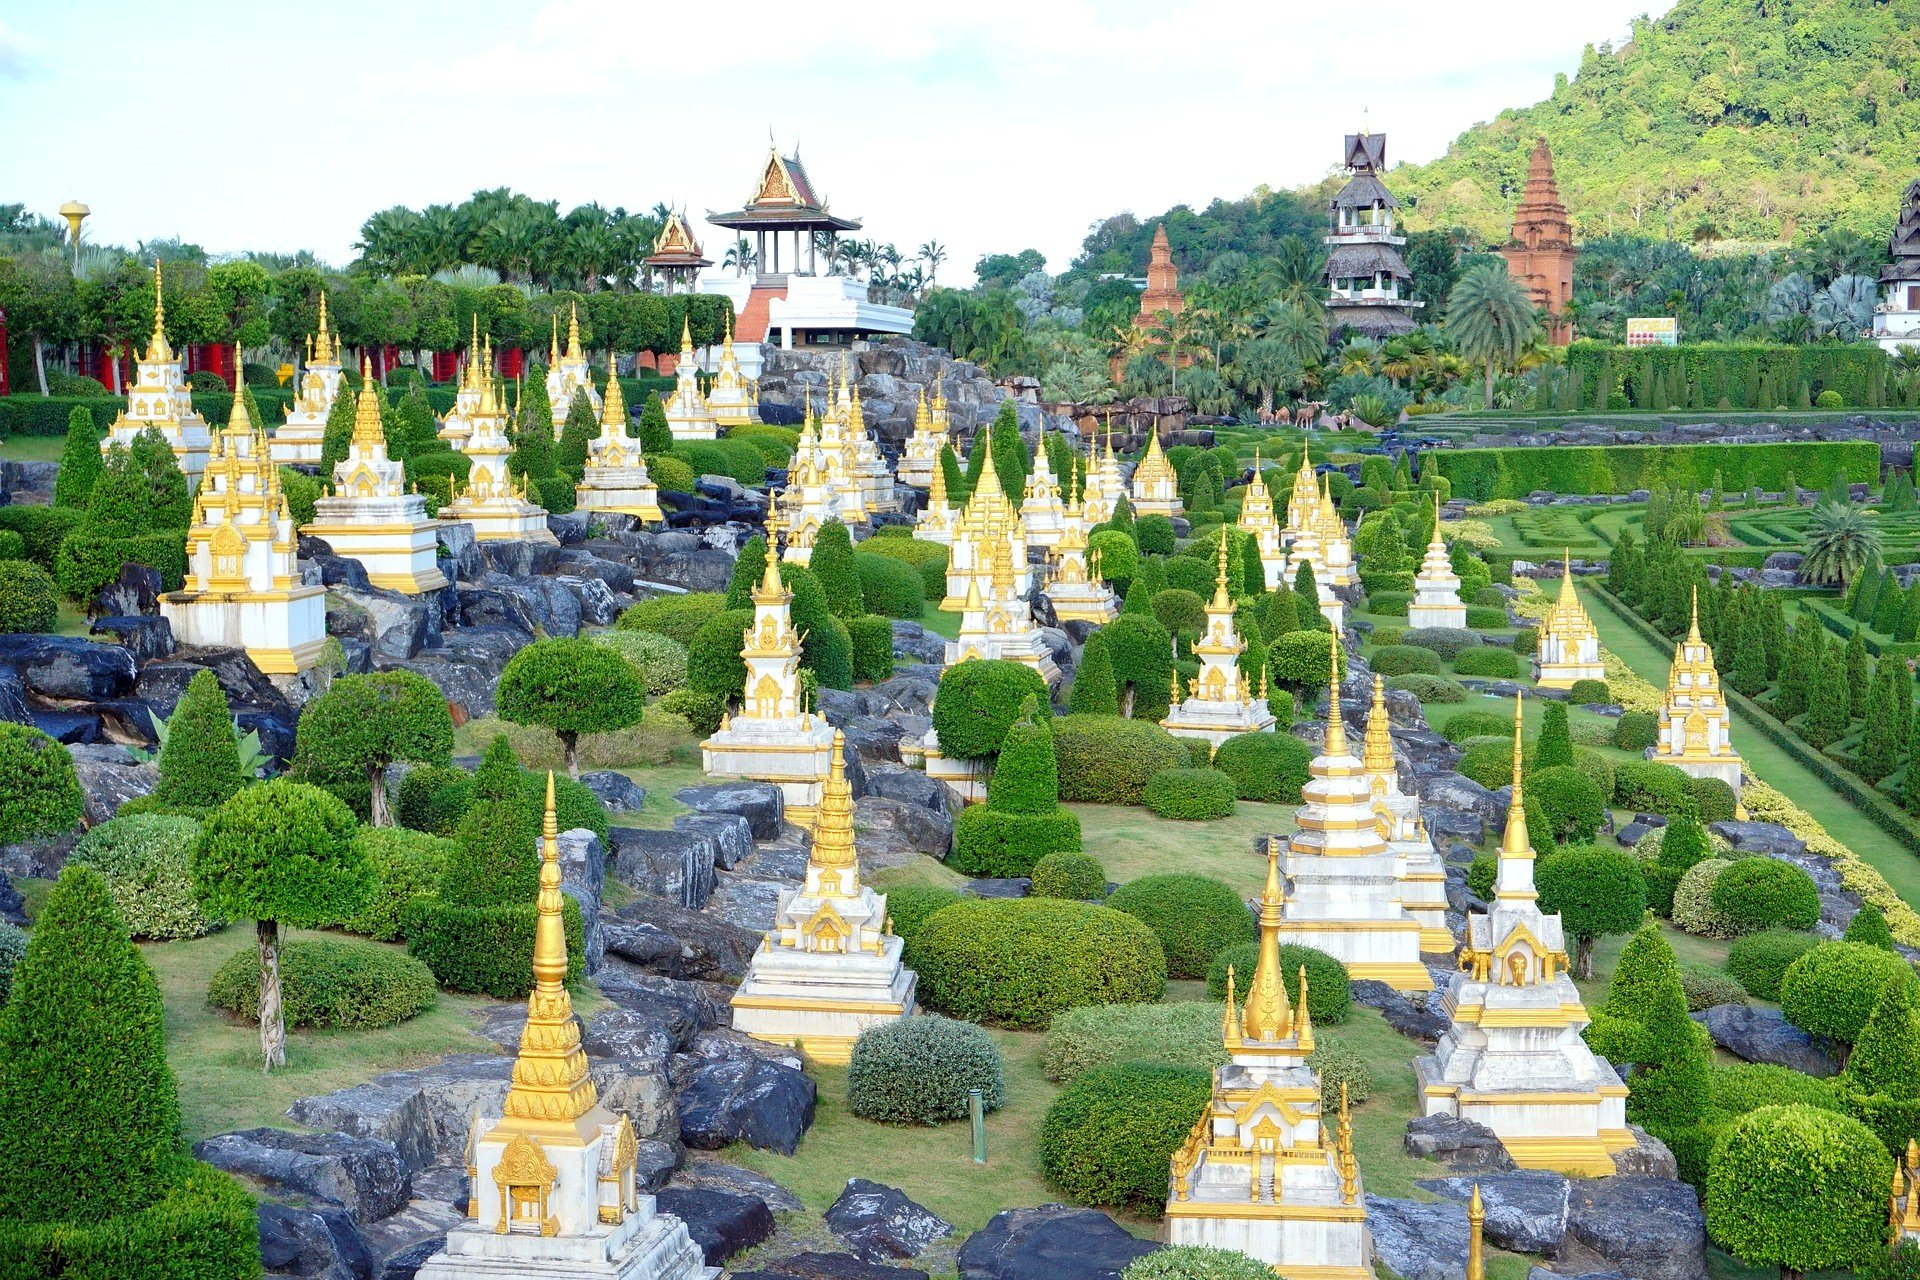 Nong Nooch Tropical Garden near Pattaya